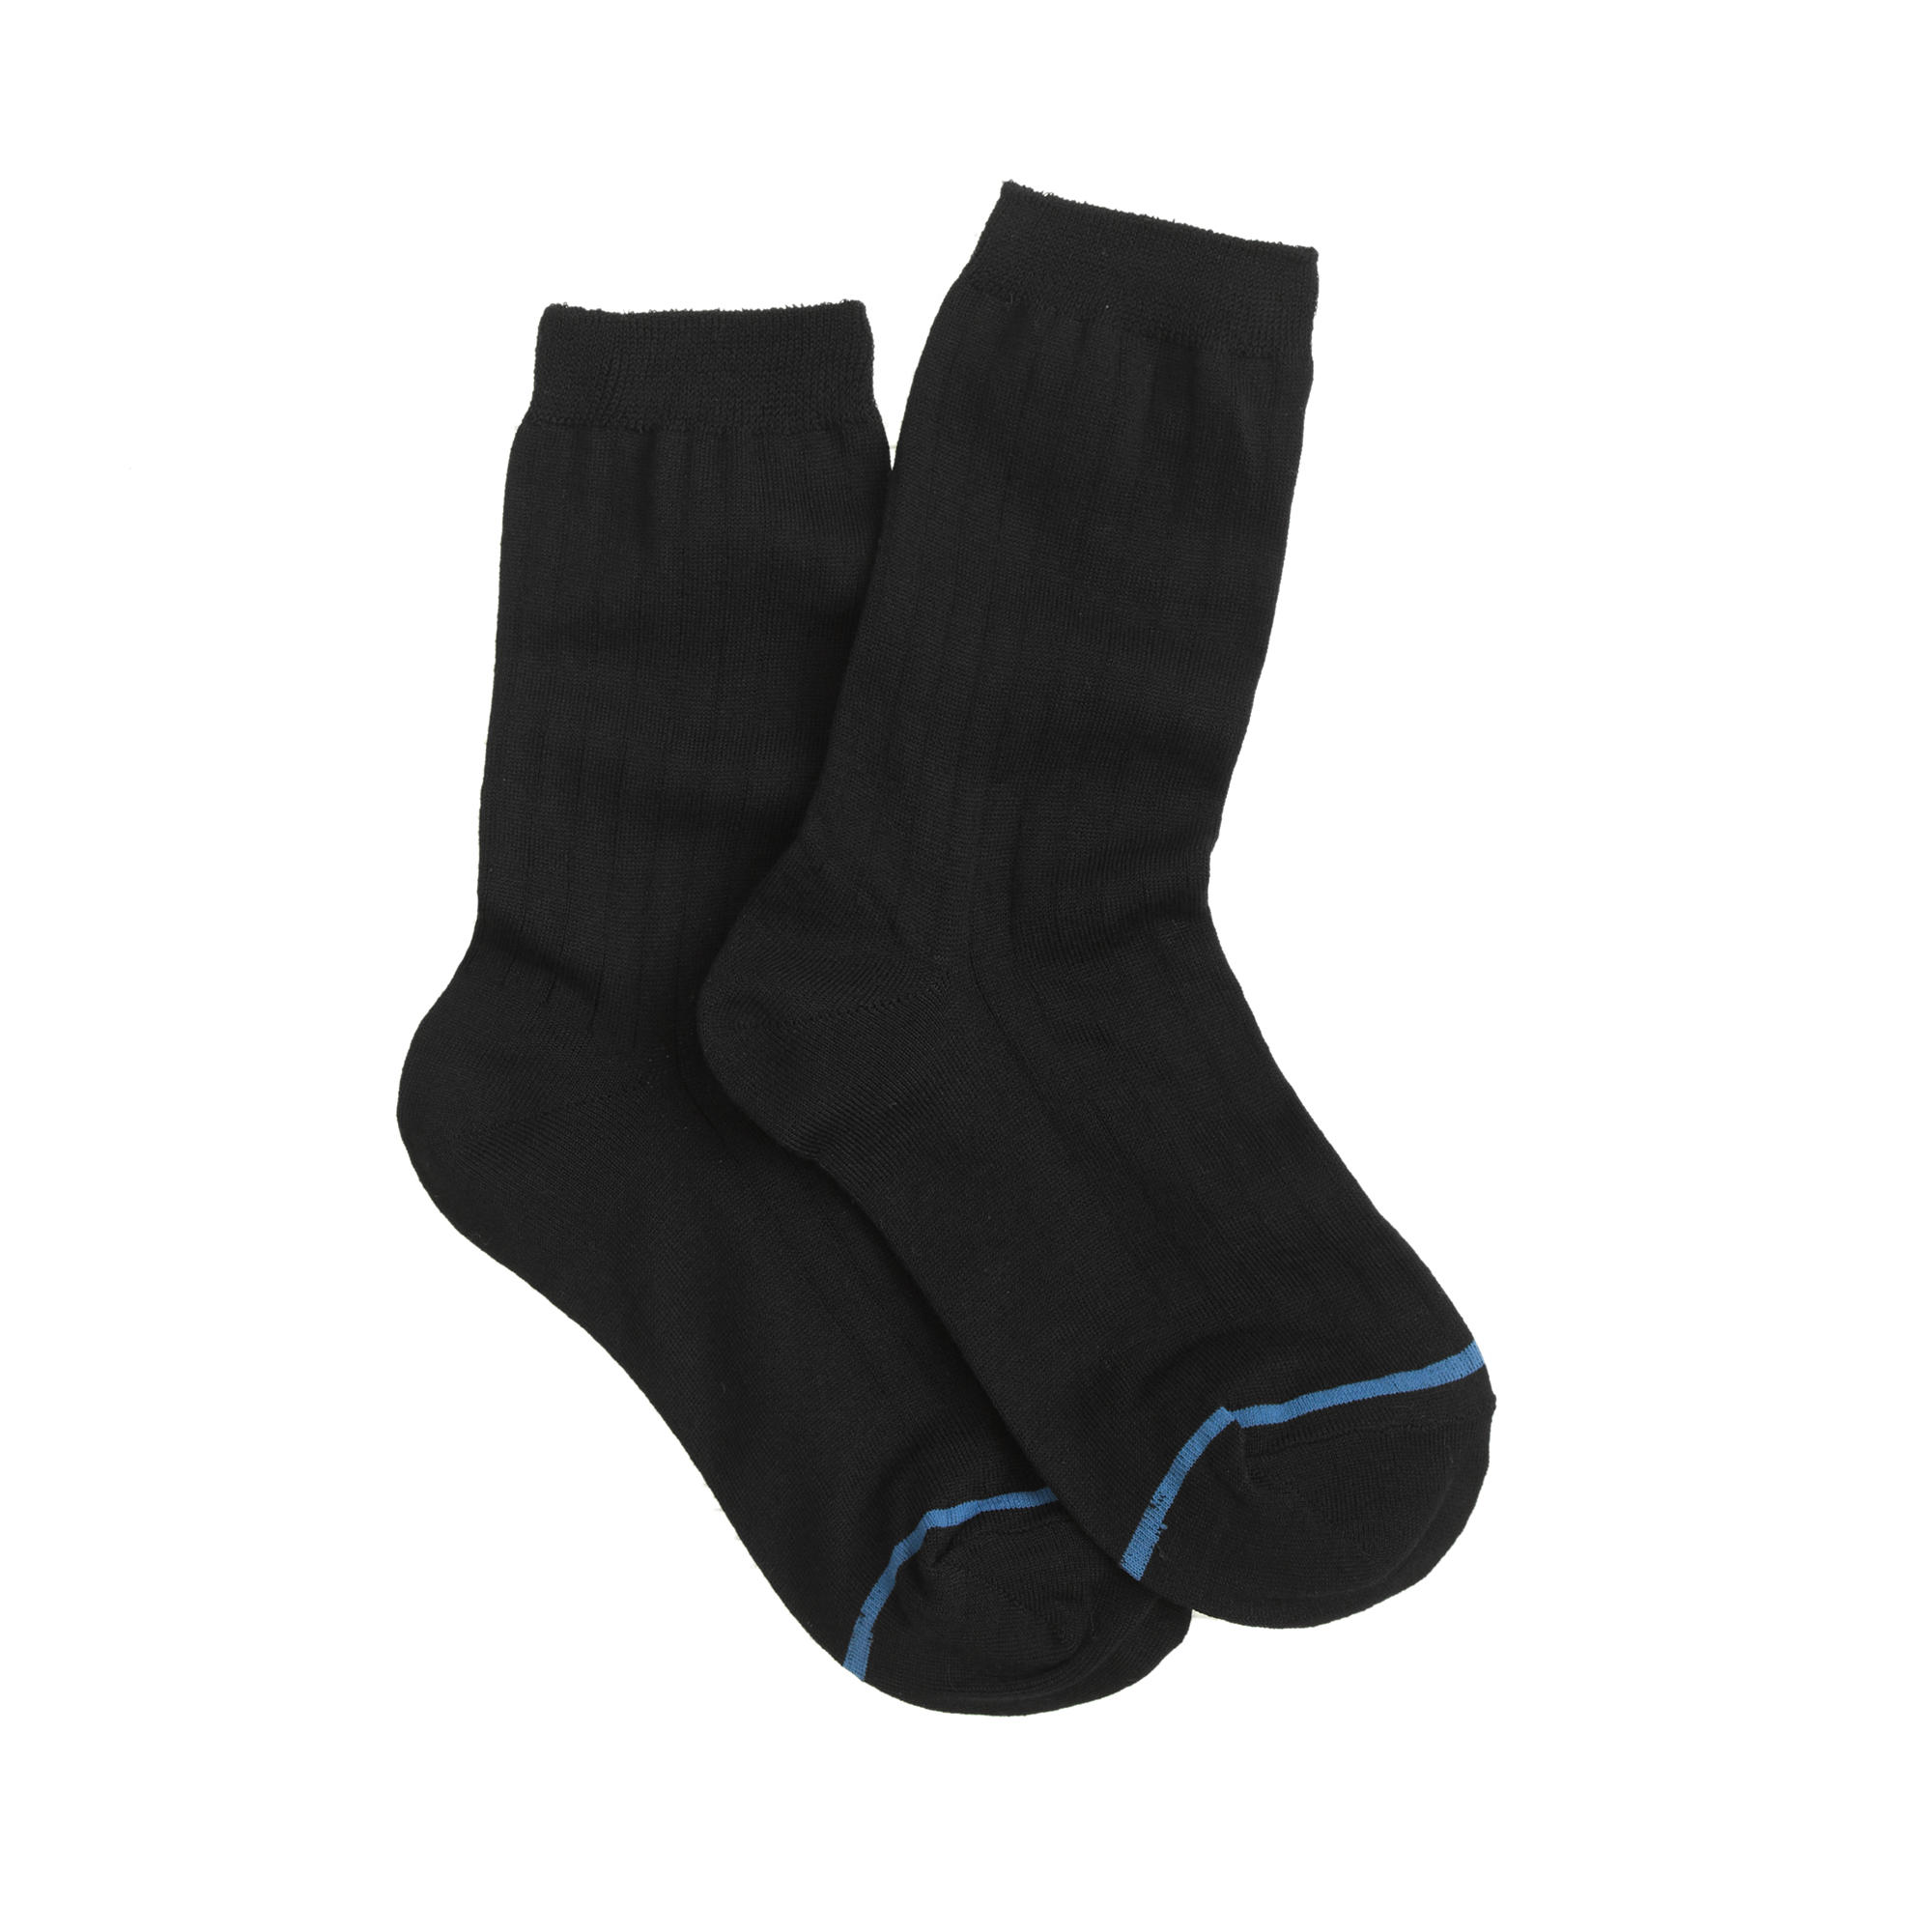 Boys Toe Socks ($ - $): 30 of items - Shop Boys Toe Socks from ALL your favorite stores & find HUGE SAVINGS up to 80% off Boys Toe Socks, including GREAT DEALS like Mud Pie Baby Boys Layette Boy Rattle Toe Socks Lion ($).